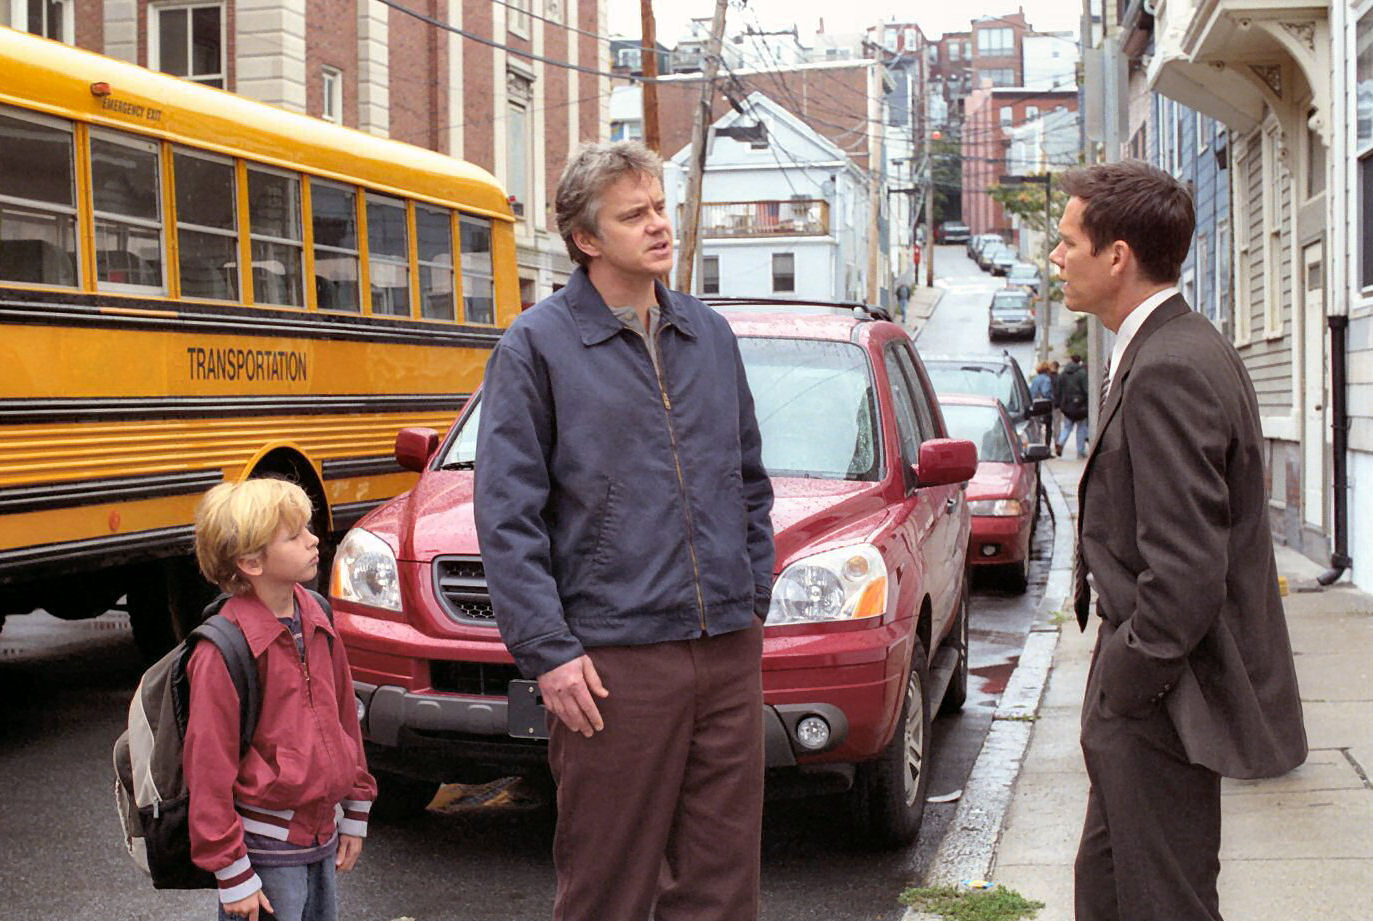 Movie Project 24 Mystic River 2003 The Warning Sign